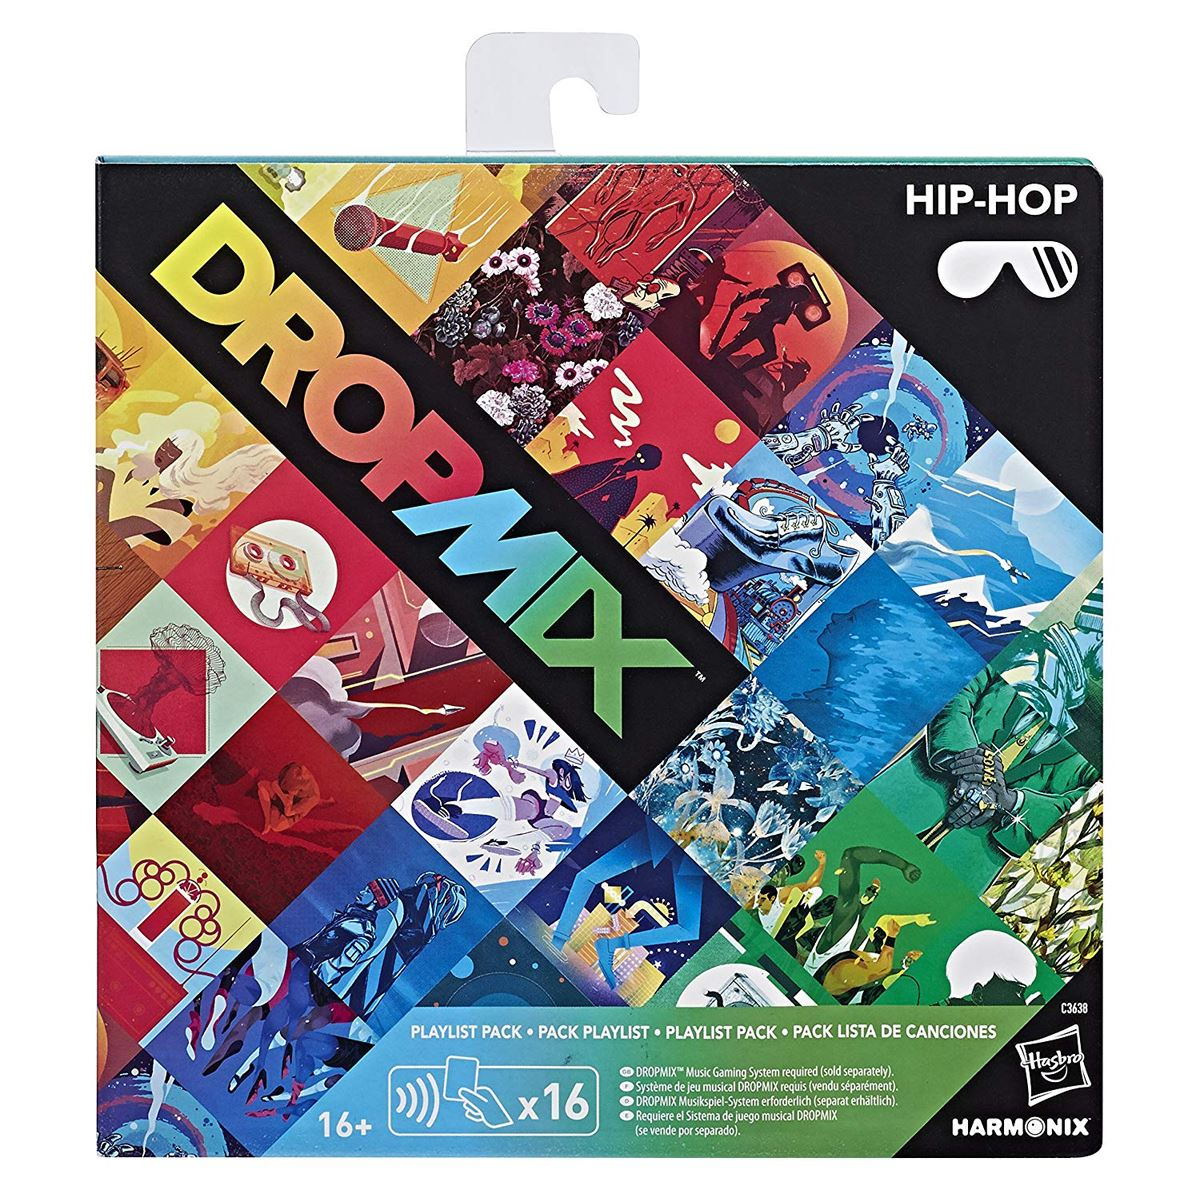 New-Dropmix-Rock-Pop-Hip-Hop-Or-Electronic-Playlist-Card-Pack-Hasbro-Official miniatuur 14